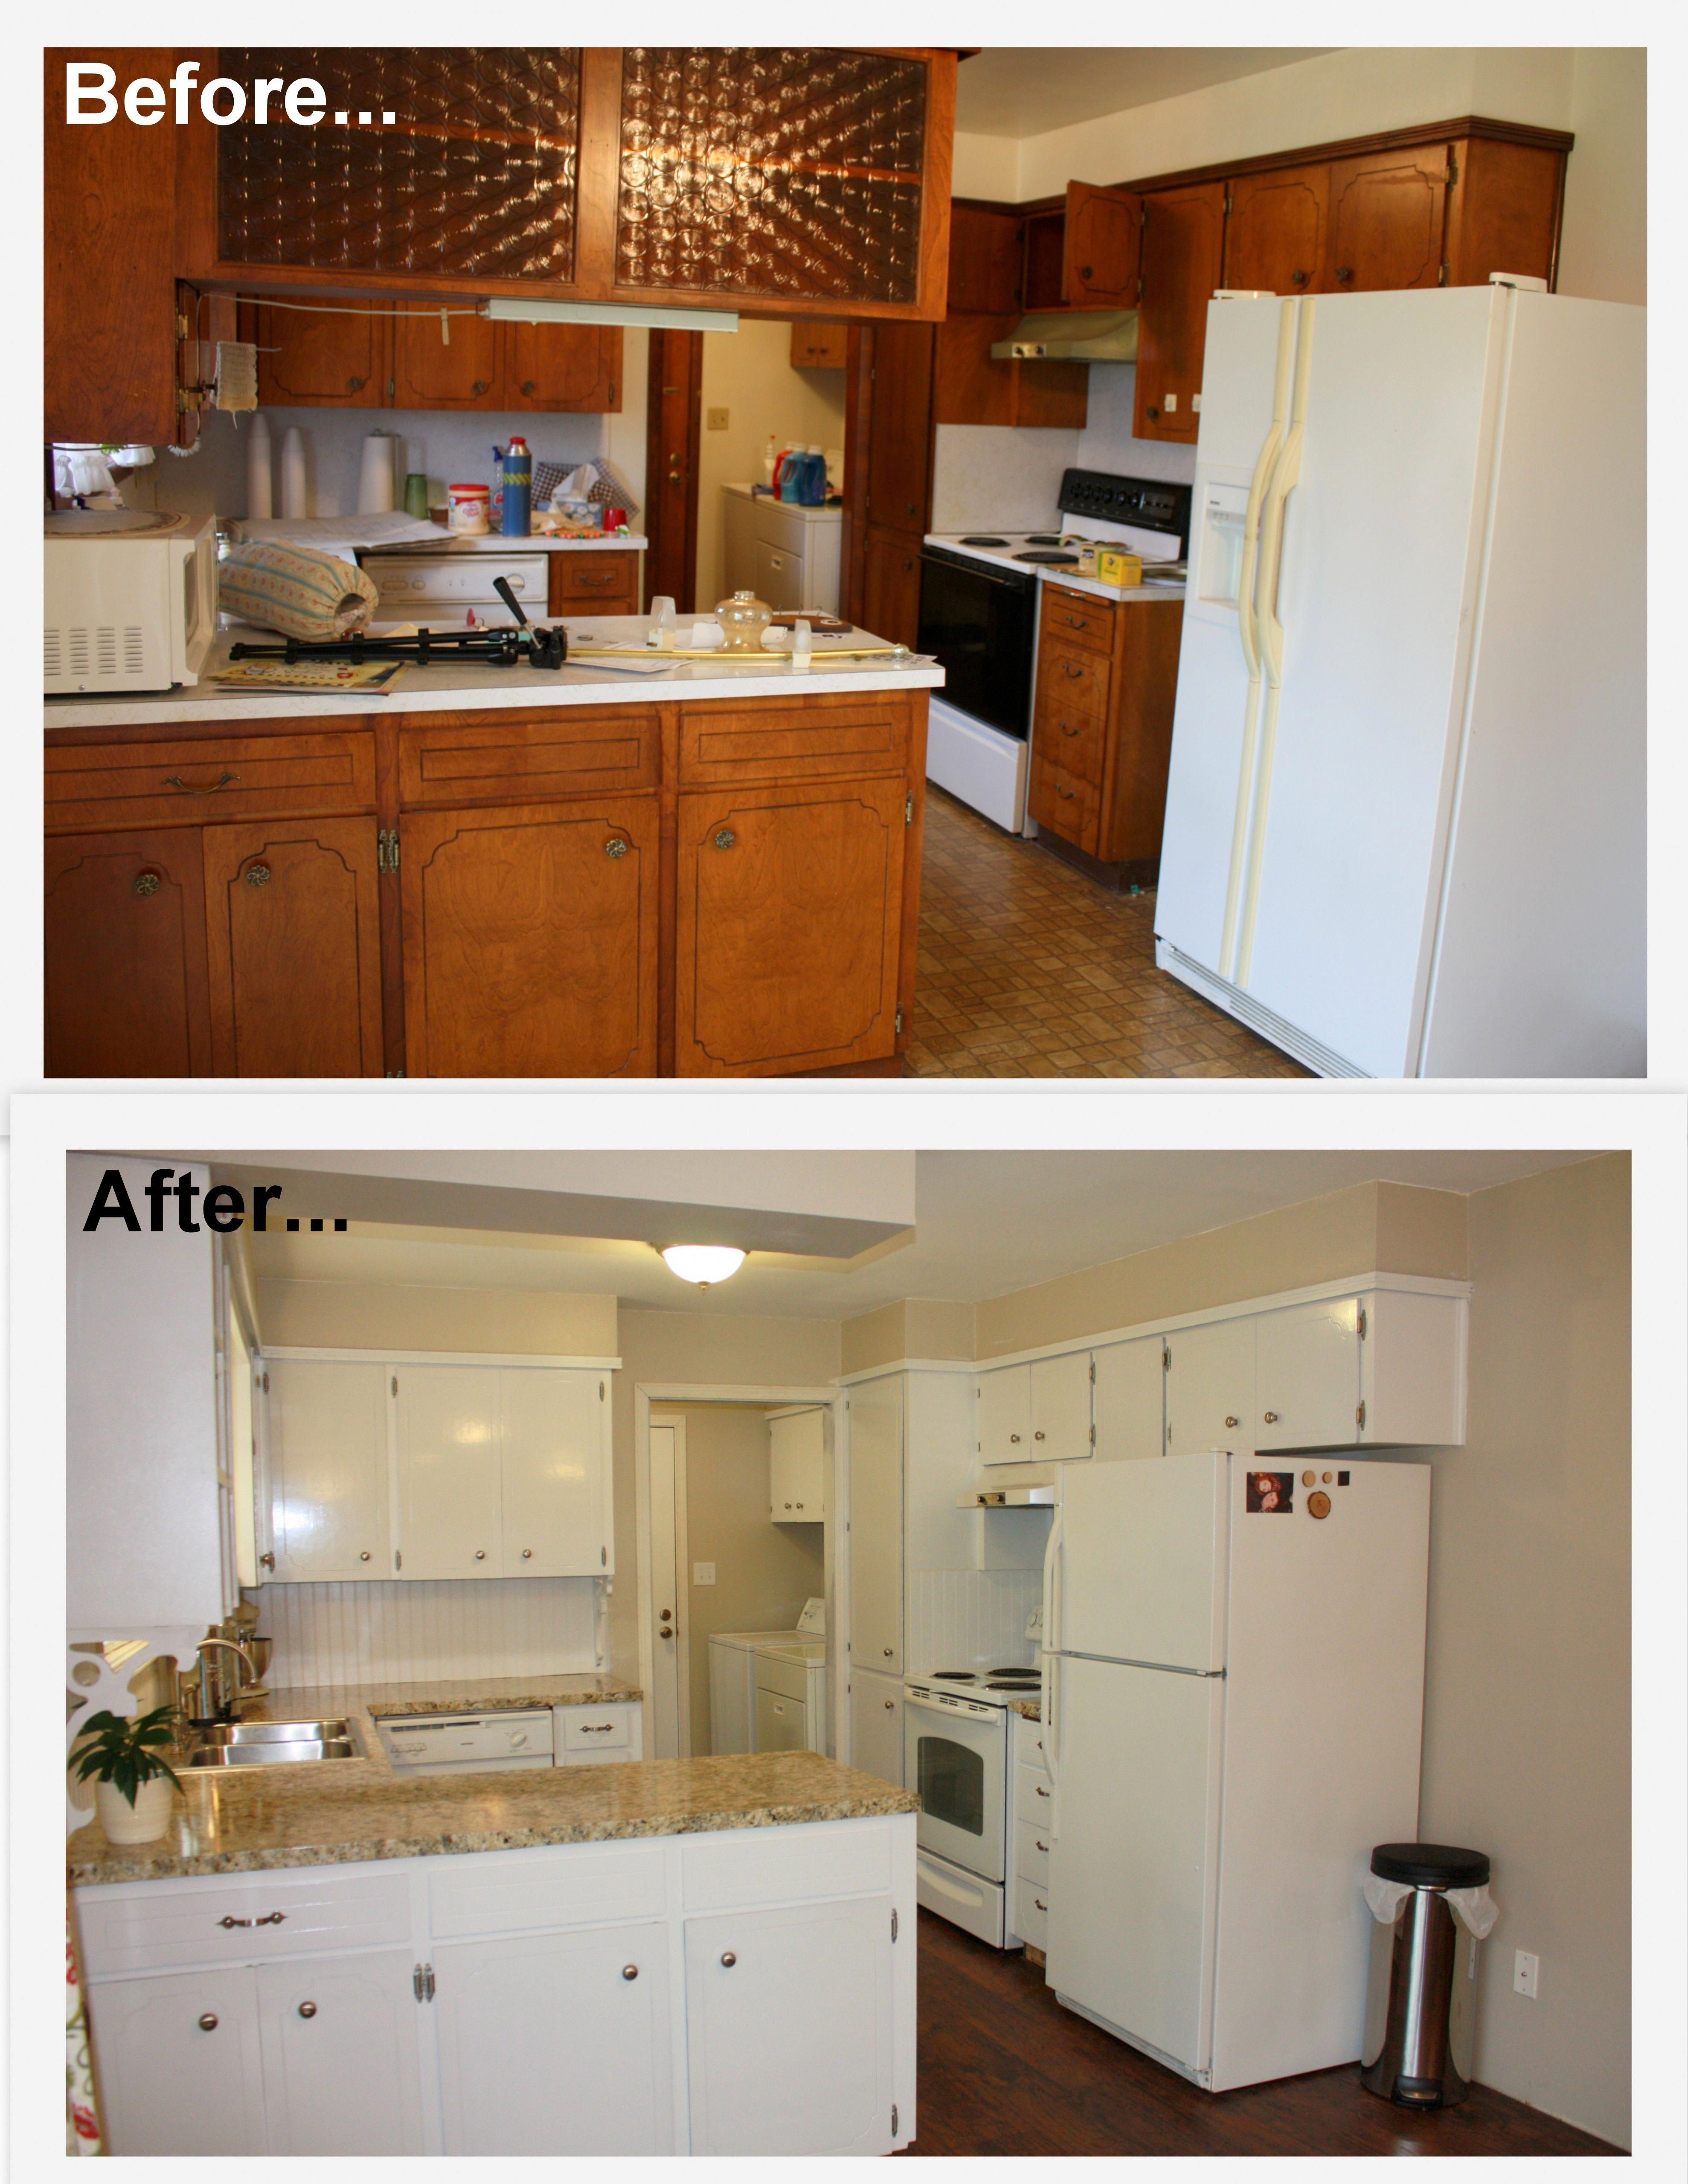 1960 S Kitchen Makeover Remodel Before And After Hardwood Flooring Painted White Cabinet Kitchen Cabinets Makeover Refacing Kitchen Cabinets Kitchen Makeover